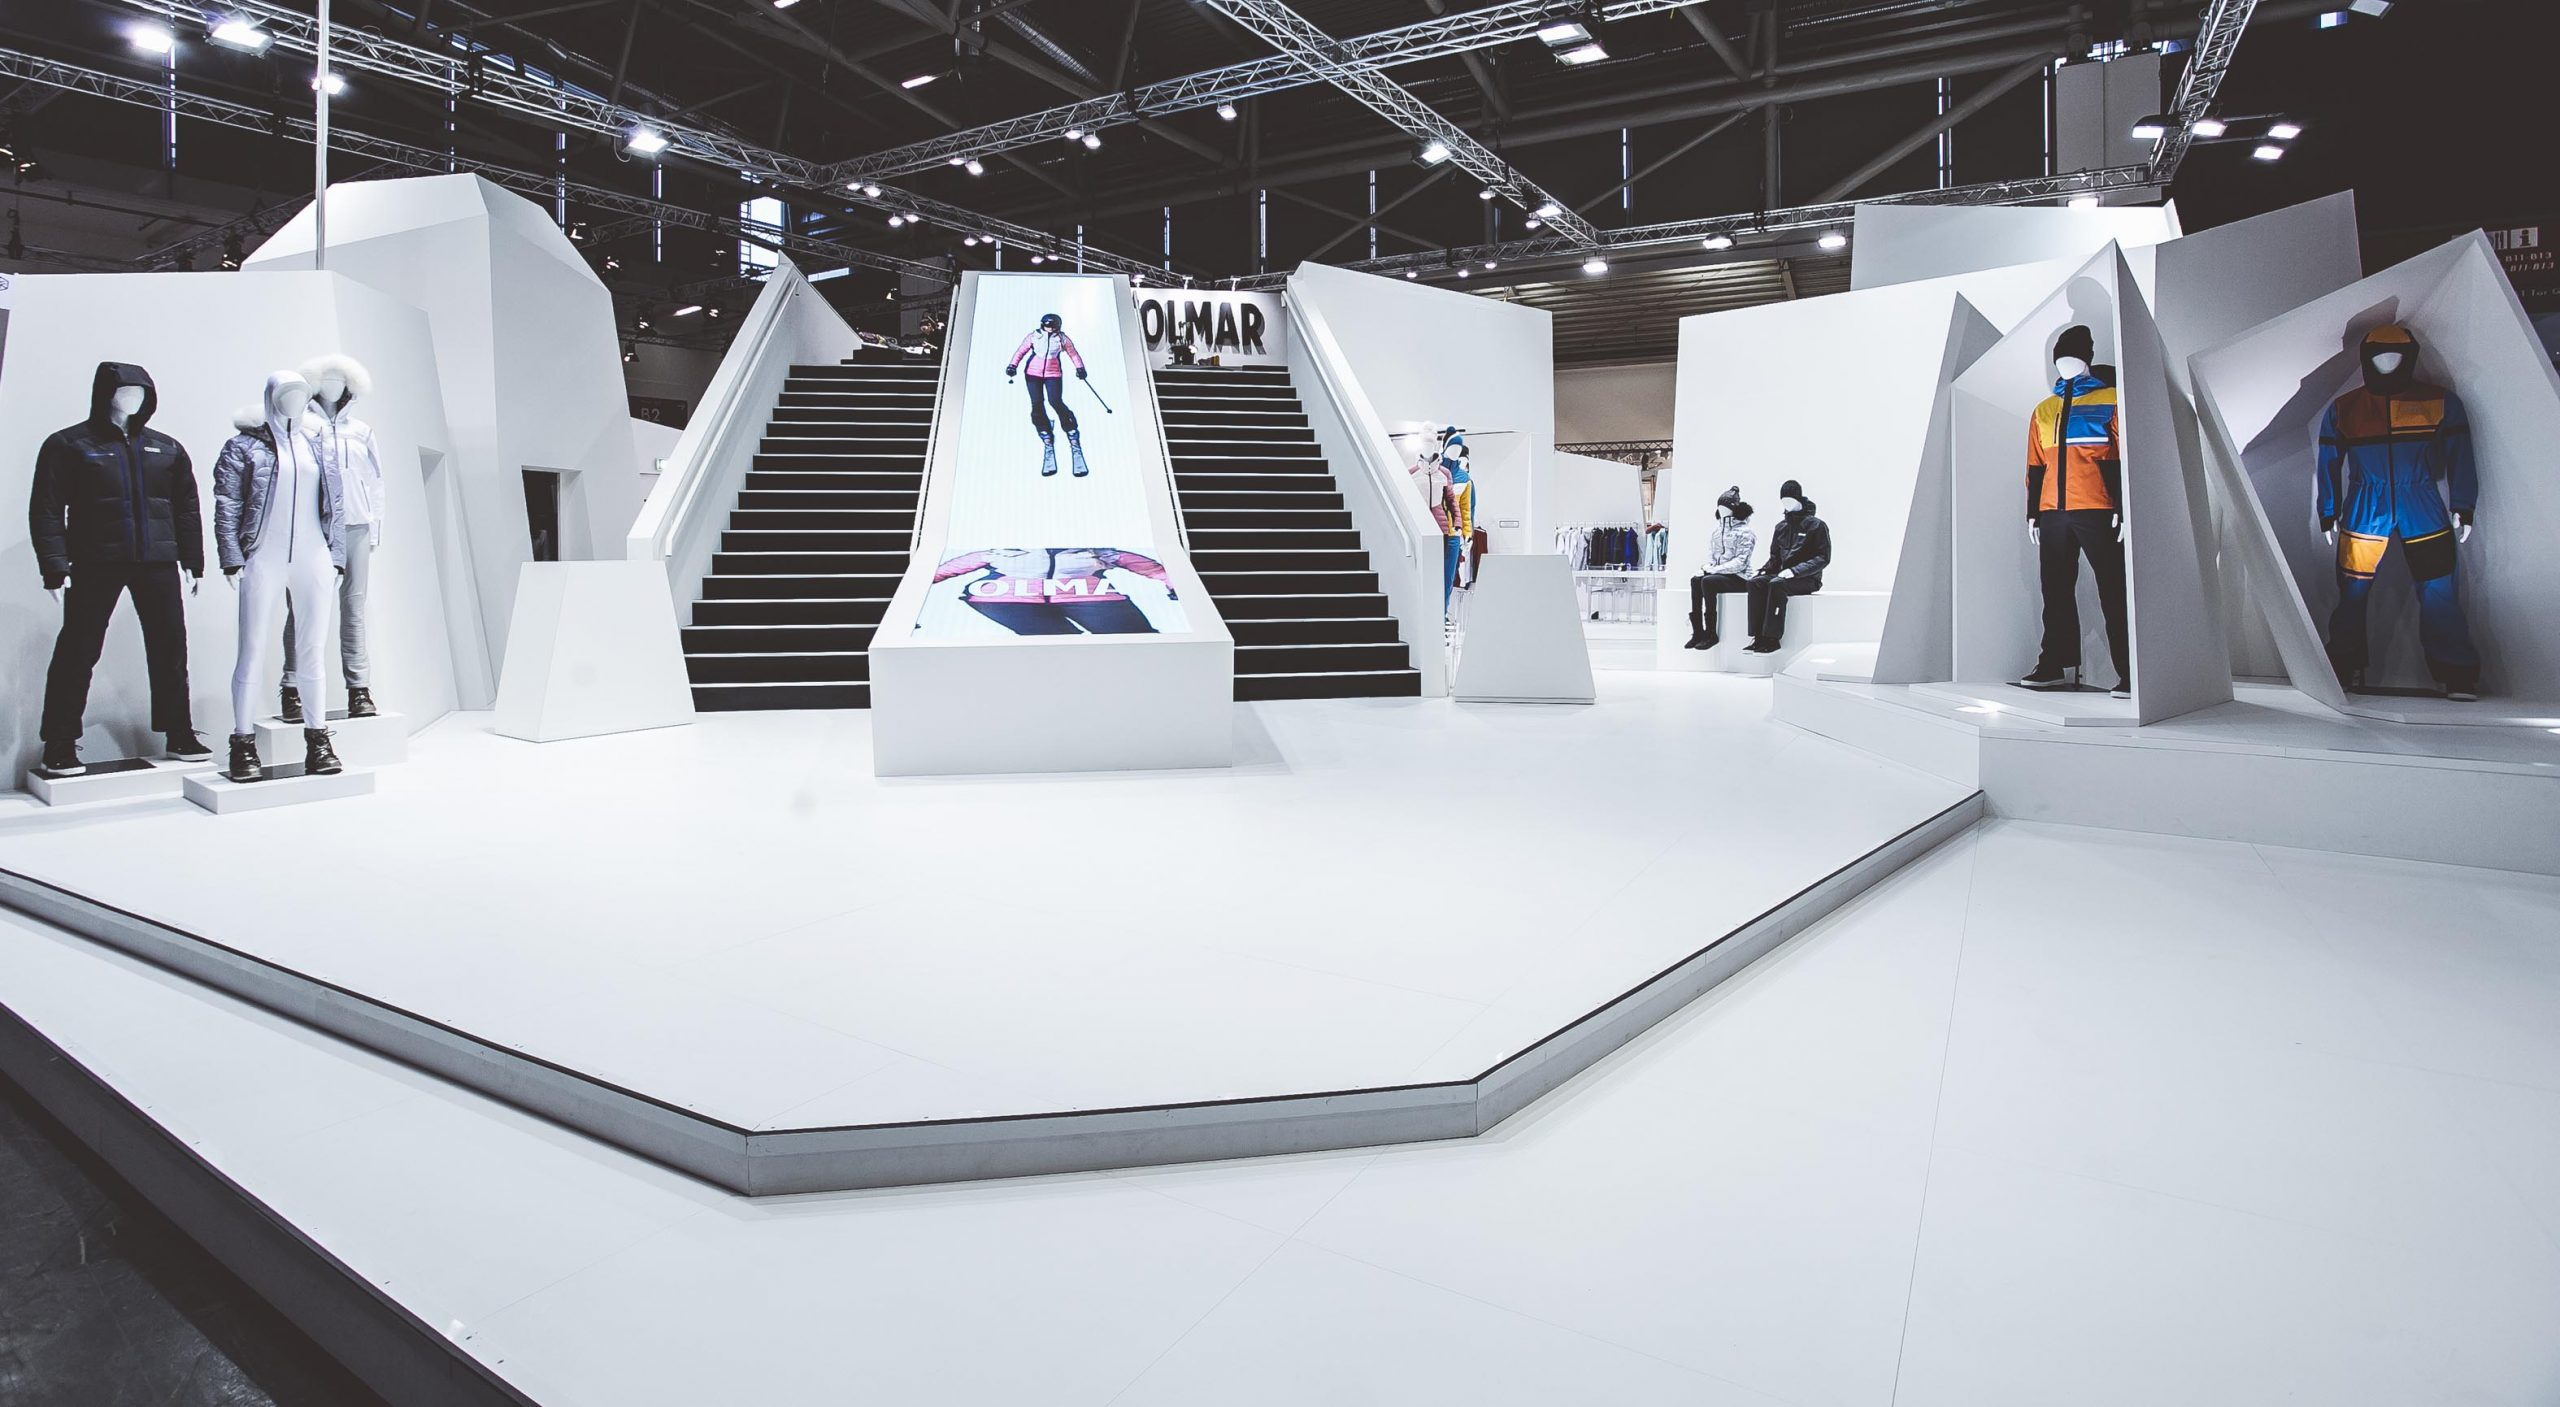 COLMAR Sport ISPO Munich stand exposition project 01